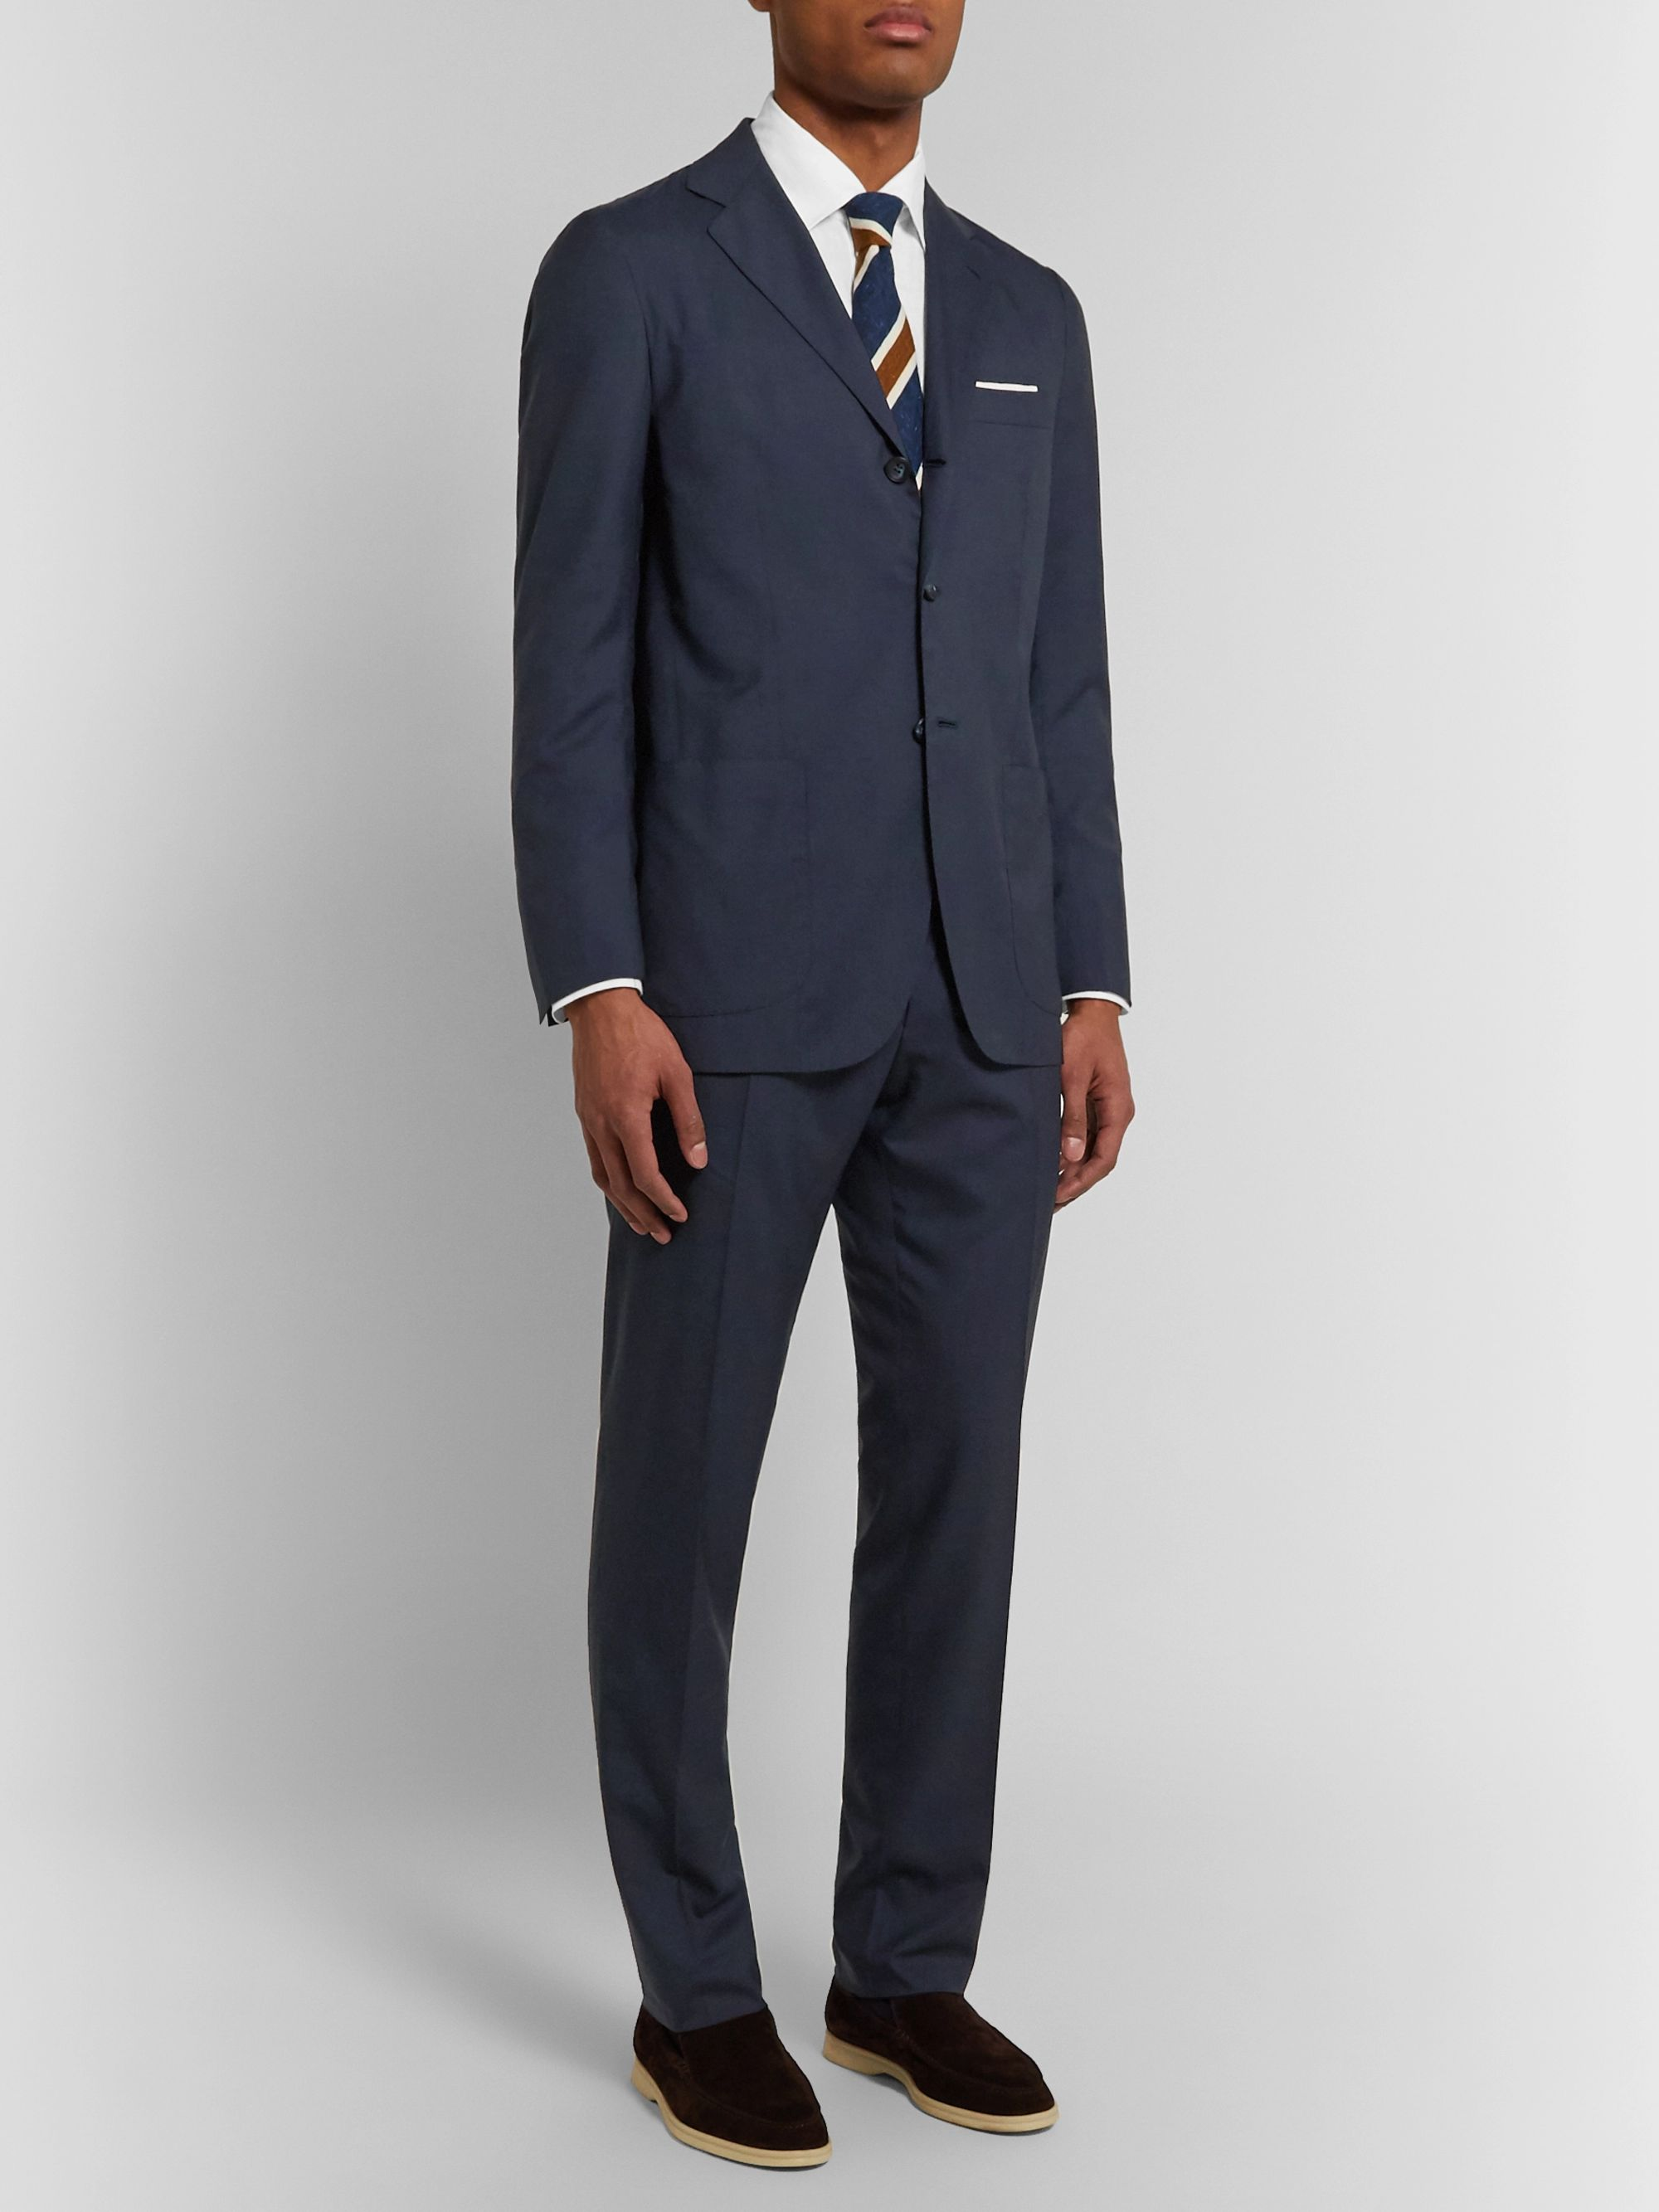 Kiton Slim-Fit Unstructured Puppytooth Cashmere Suit Jacket